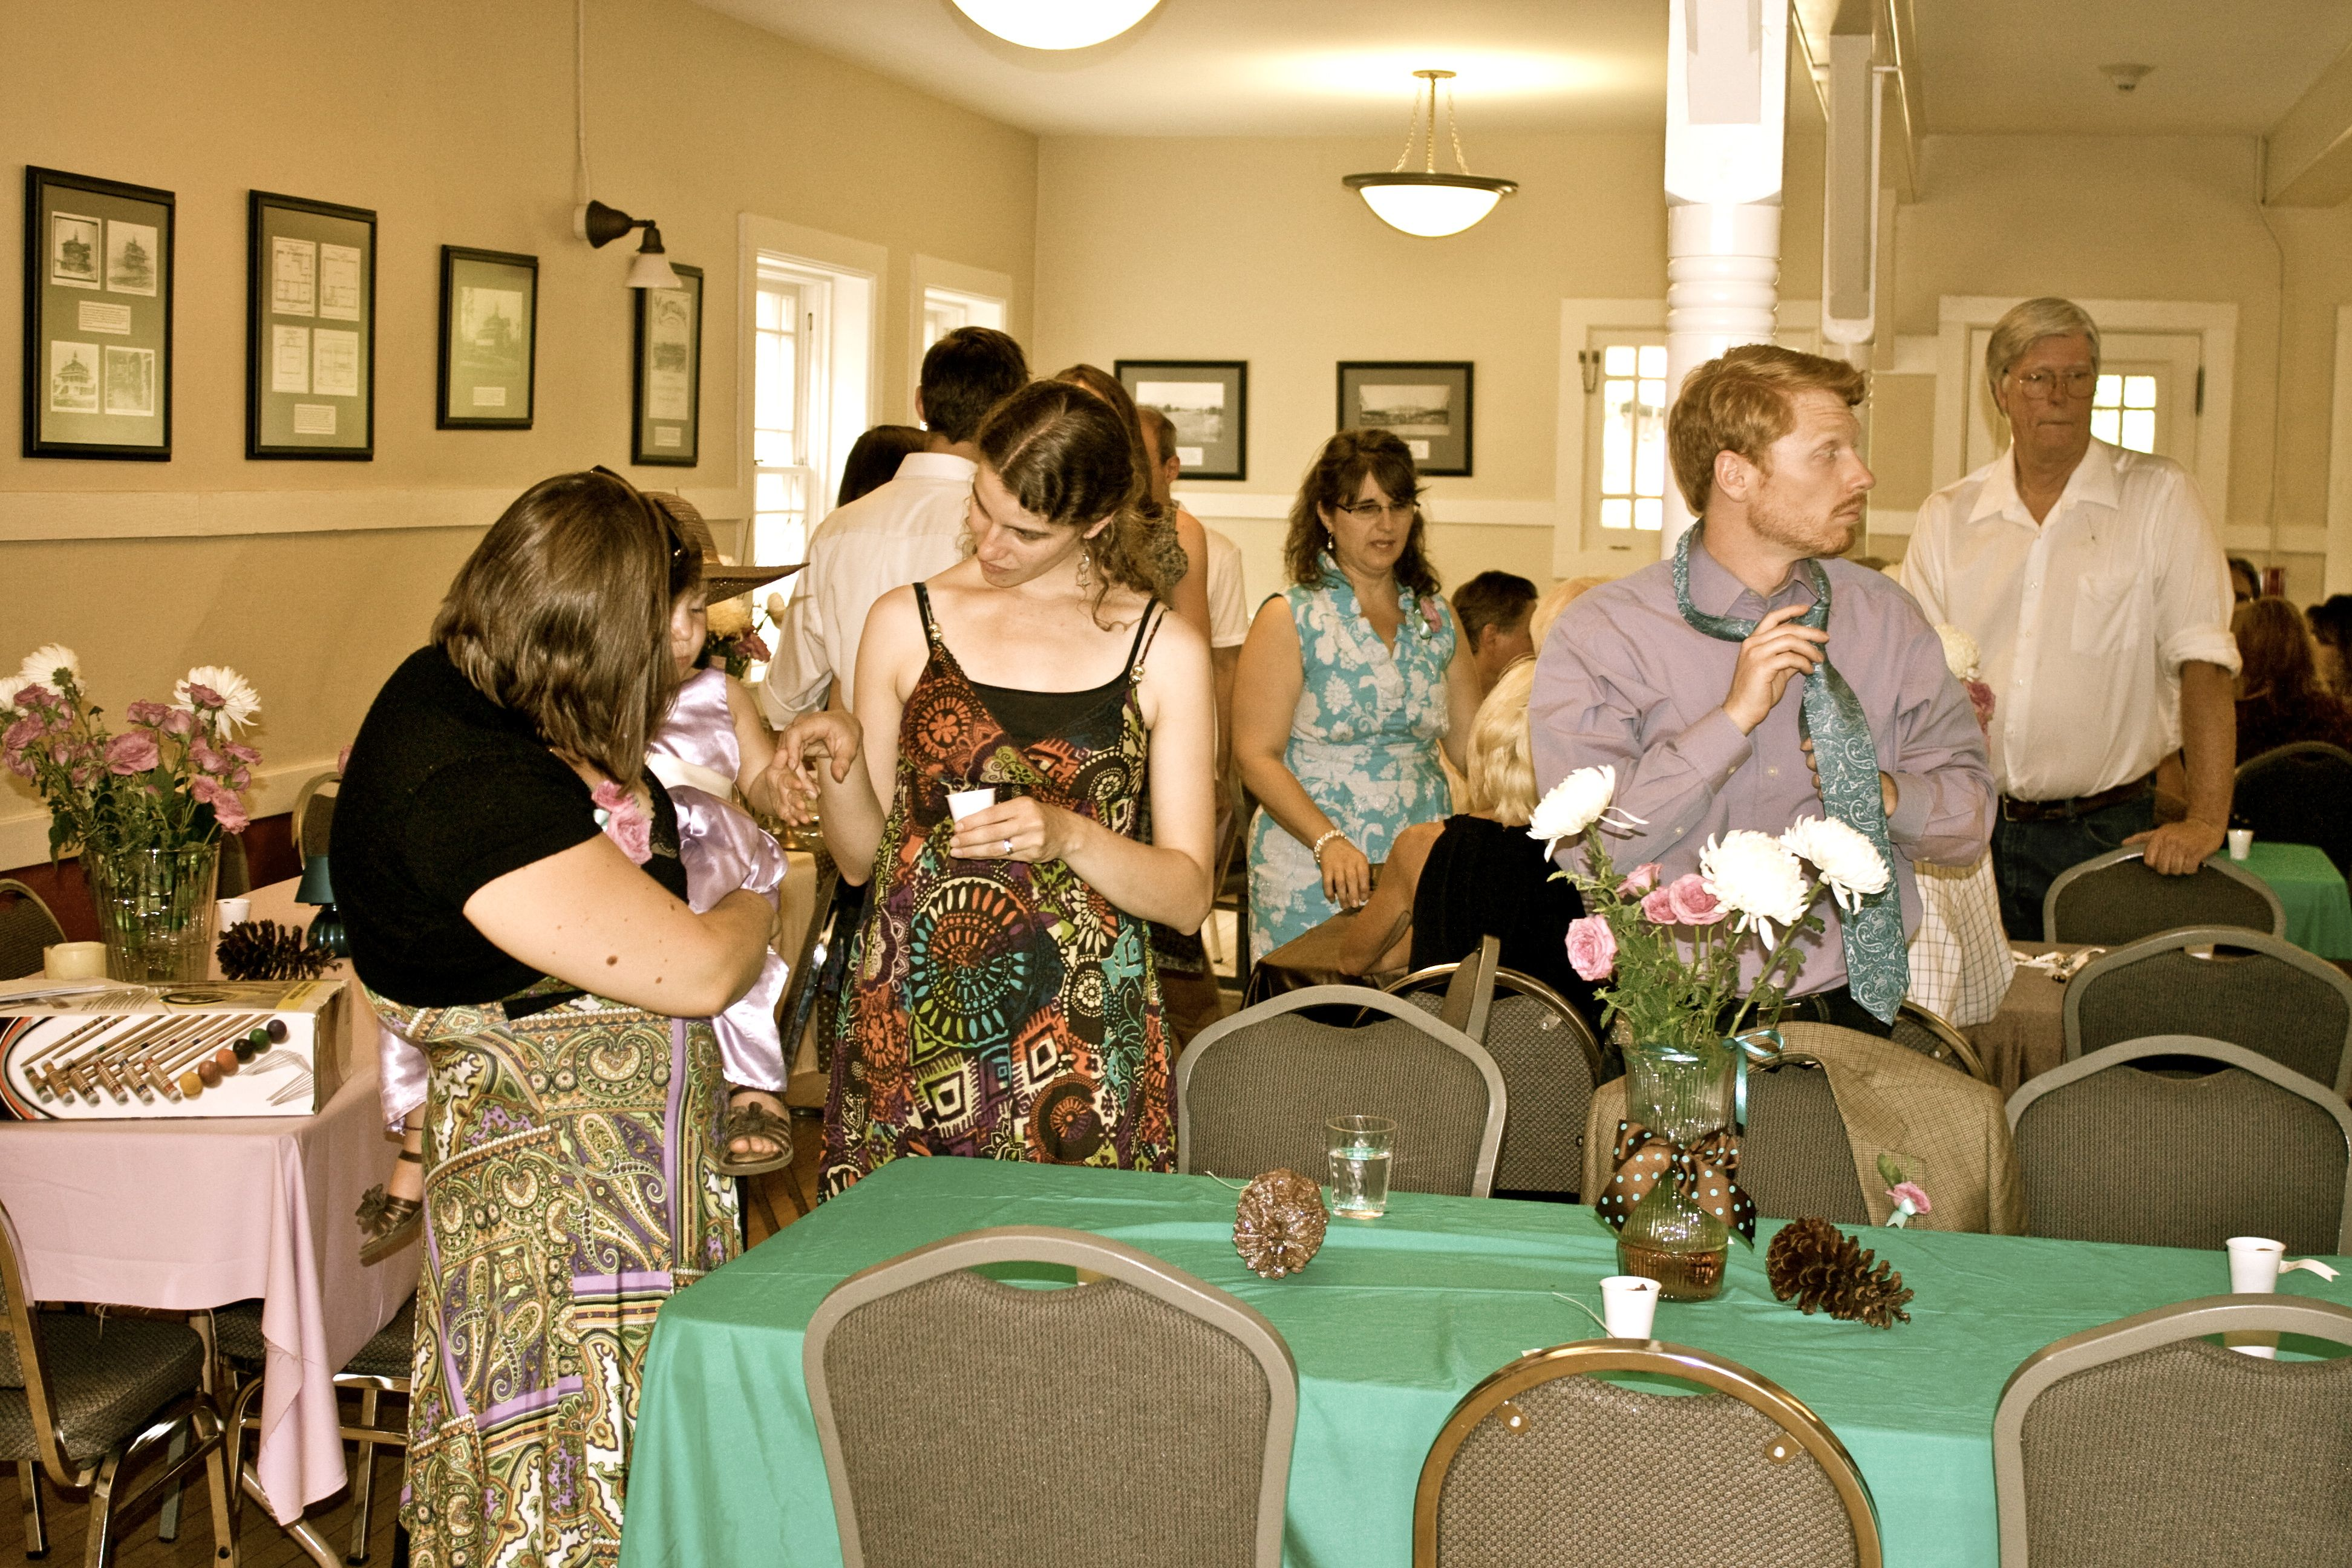 The Molkery Has A Capacity Of 60 Guests We Also Had To Be Considerate Of Our Divorced Parents Space Was Limited The Seating Chart Wa Wedding Colors Our Wedding Second Weddings